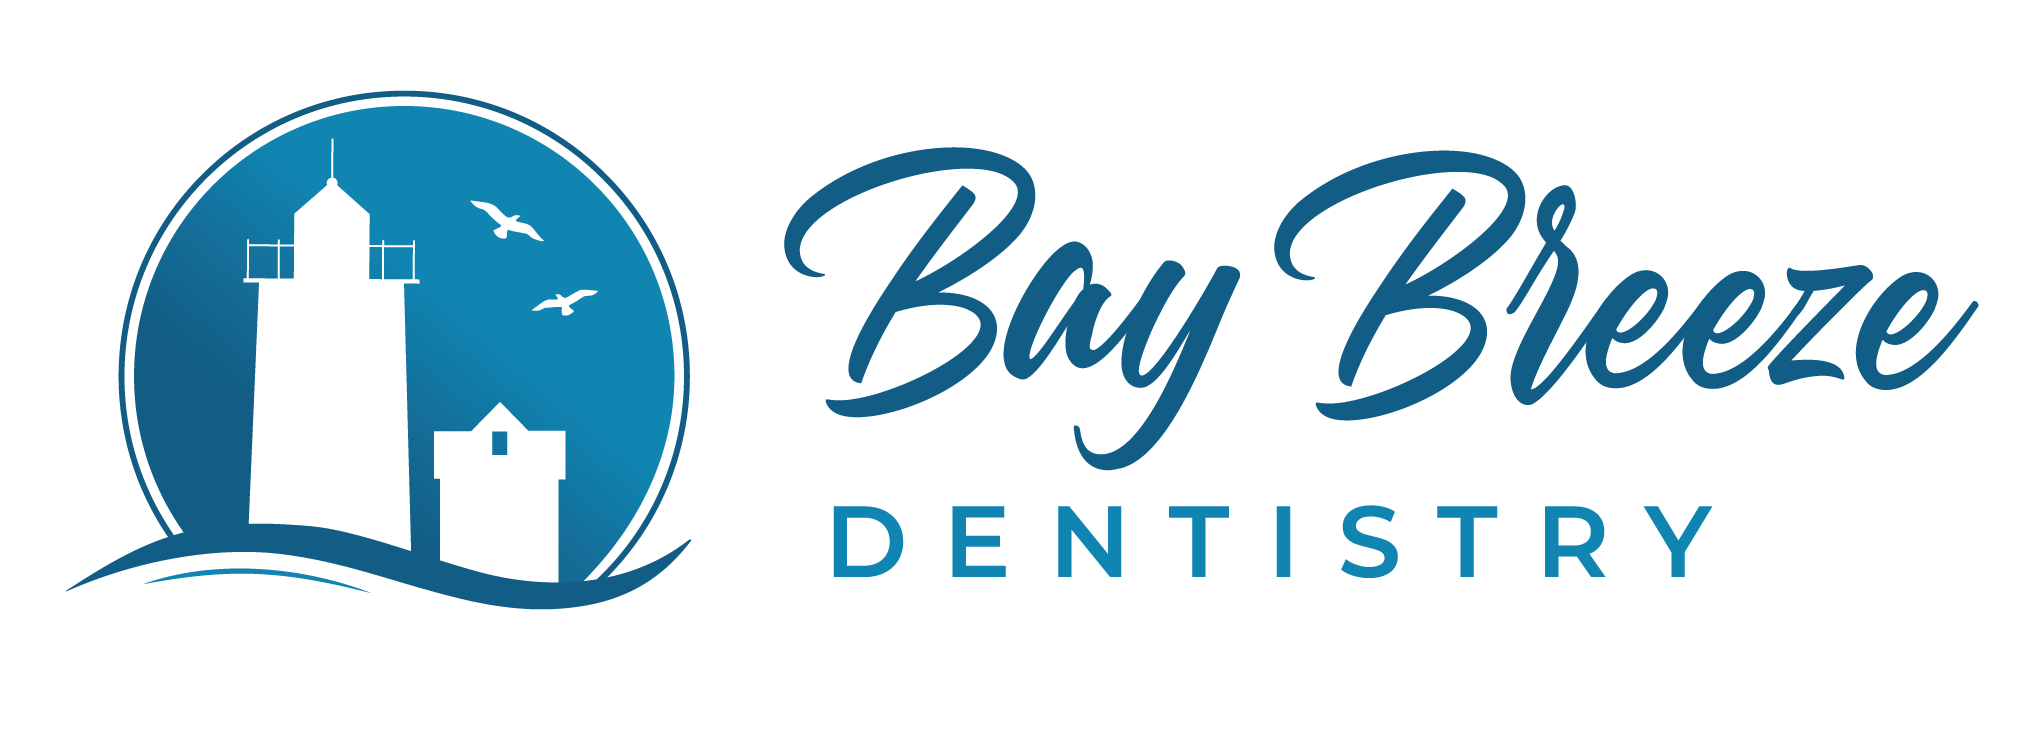 Bay Breeze Dentistry Mobile Logo